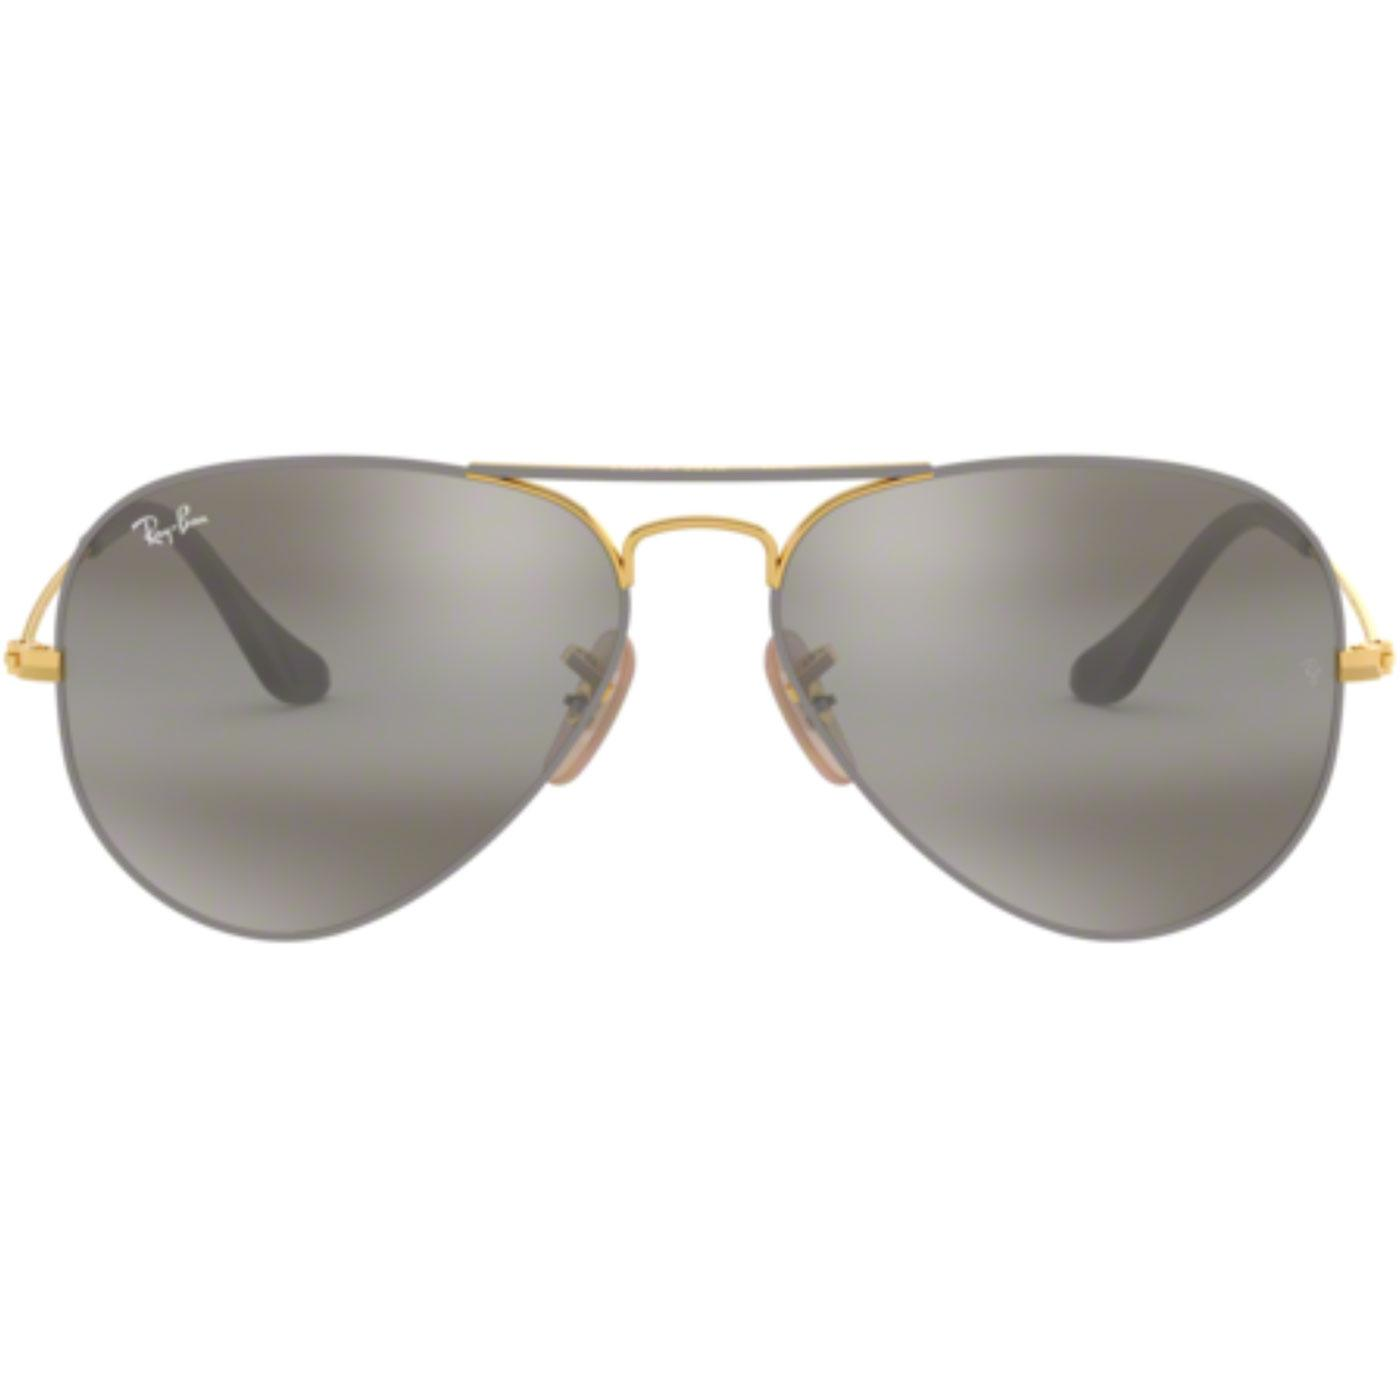 Aviator RAY-BAN Retro Mod Sunglasses in Gold/Grey